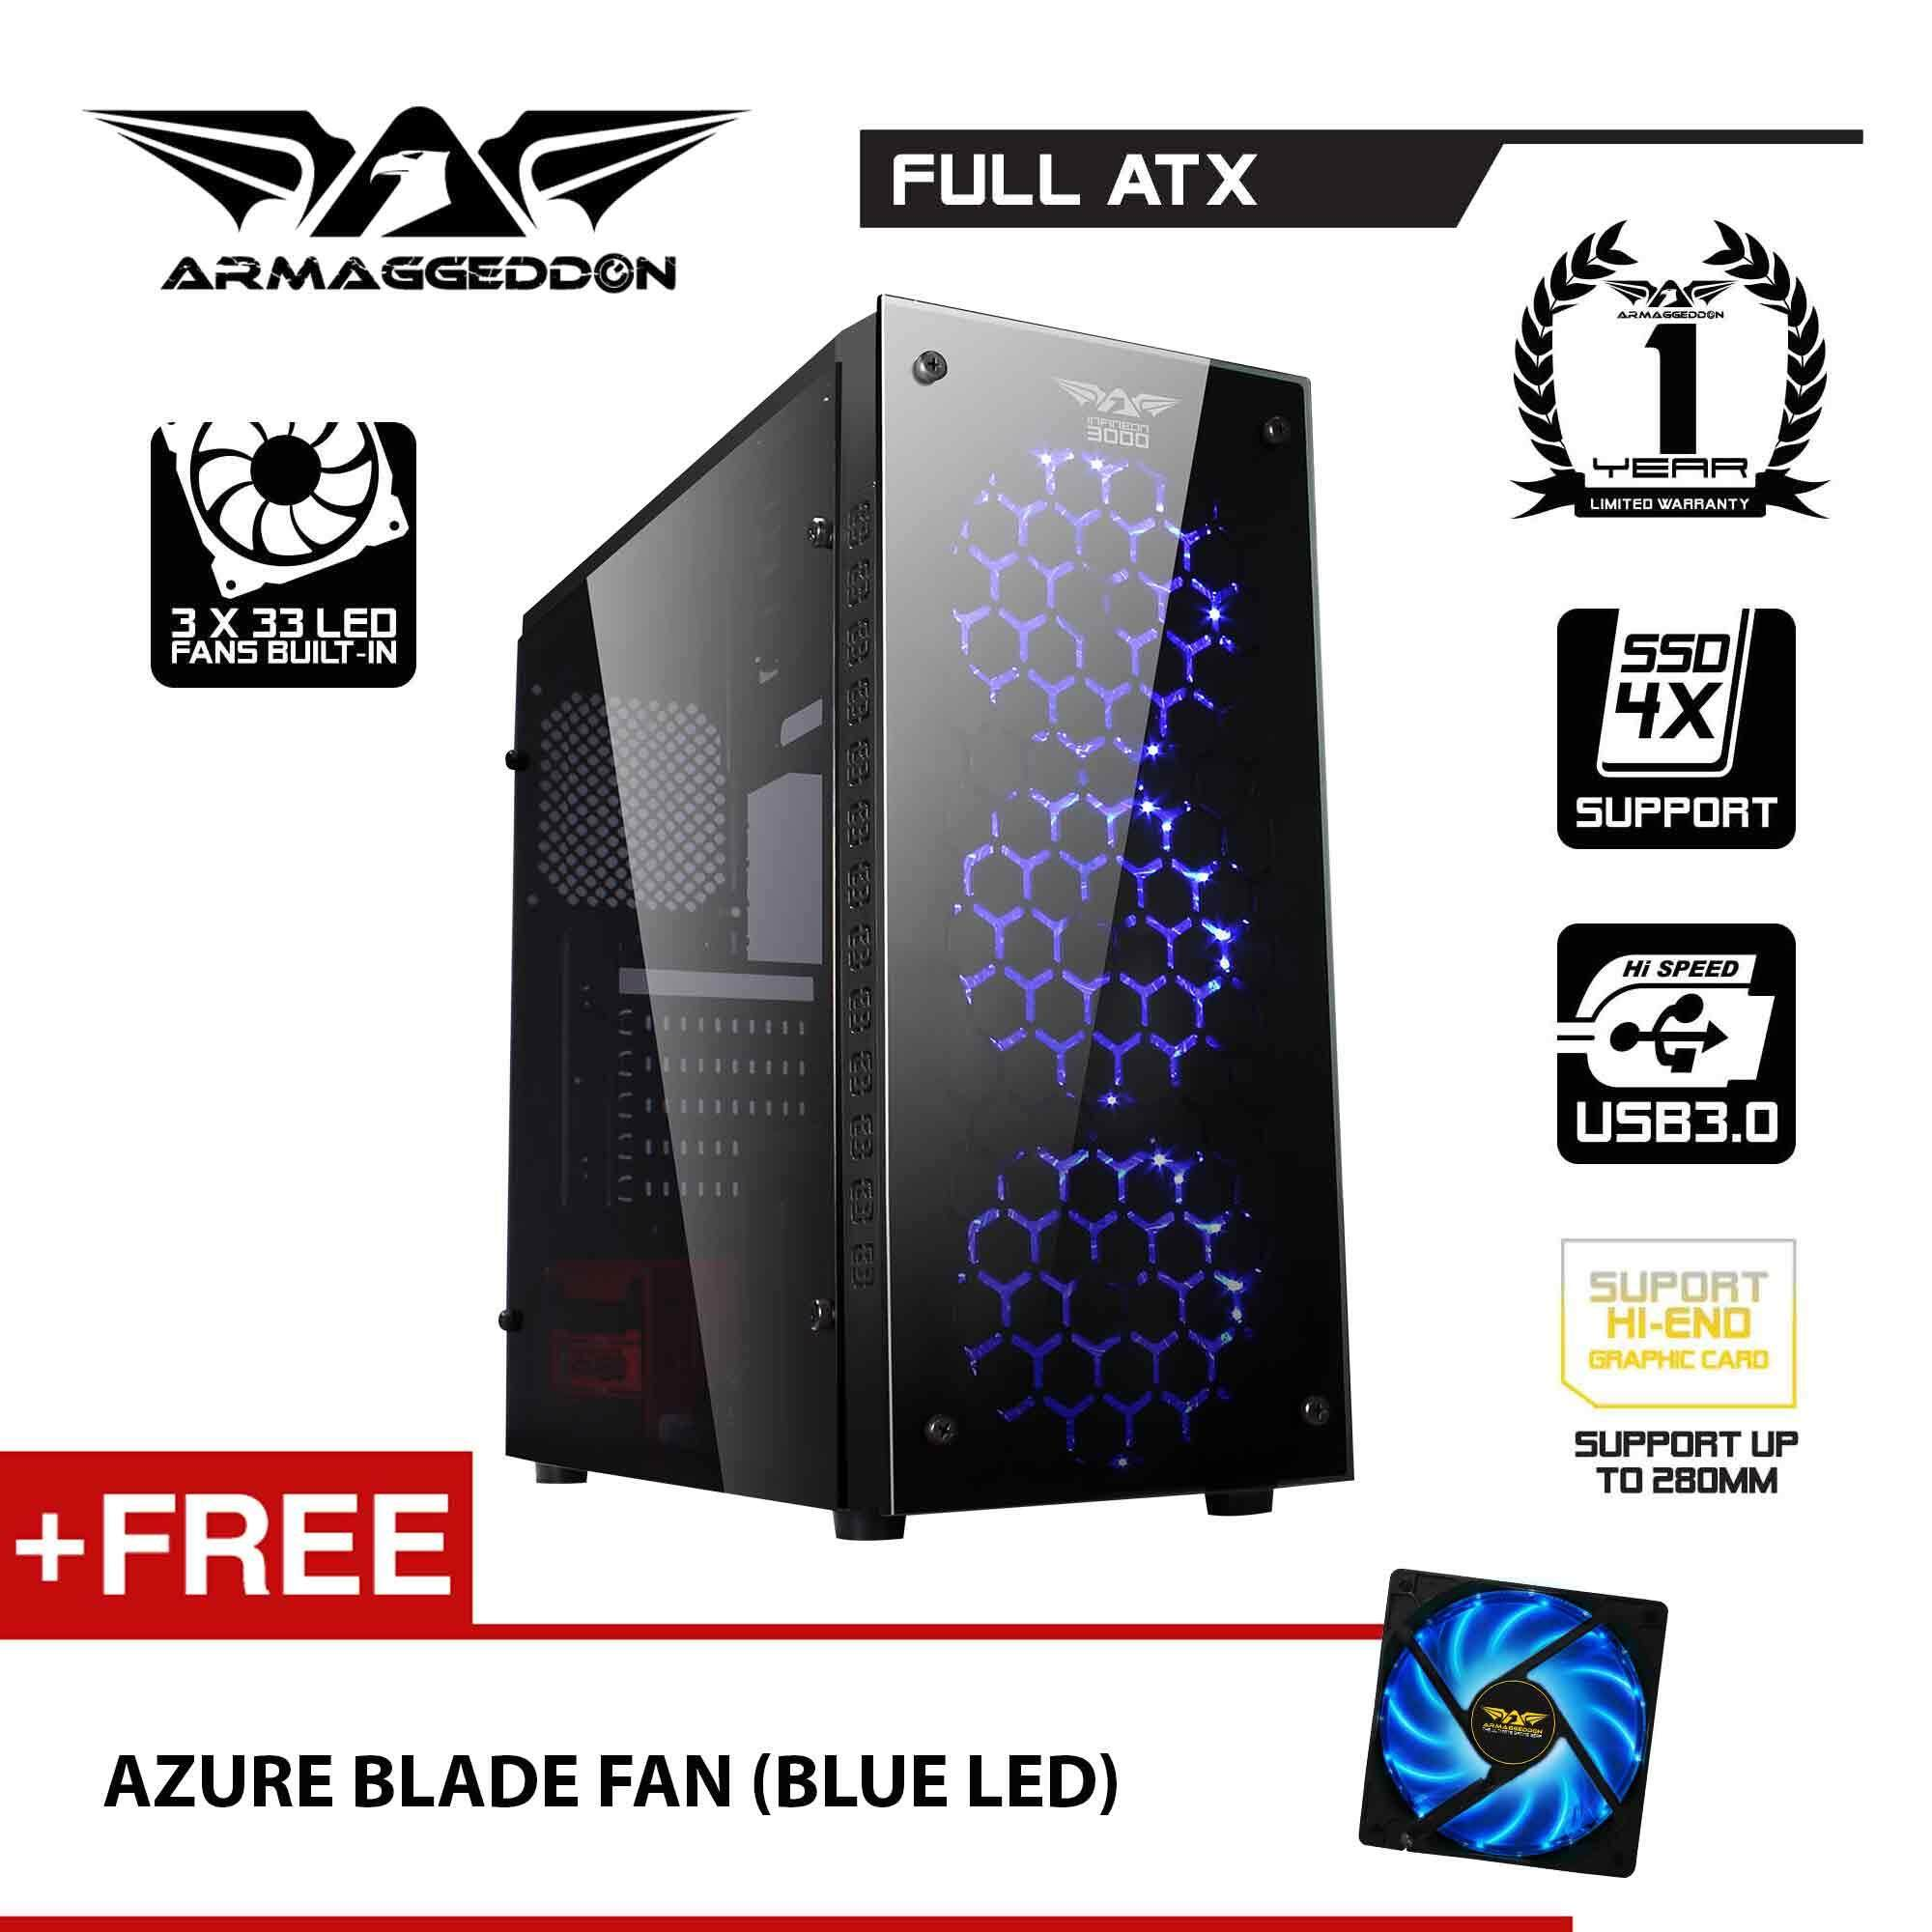 Armaggeddon Infineon 3000 ATX Gaming Tower Free Azure Blade Fan(Full View Transparent Side Panel Design) Malaysia